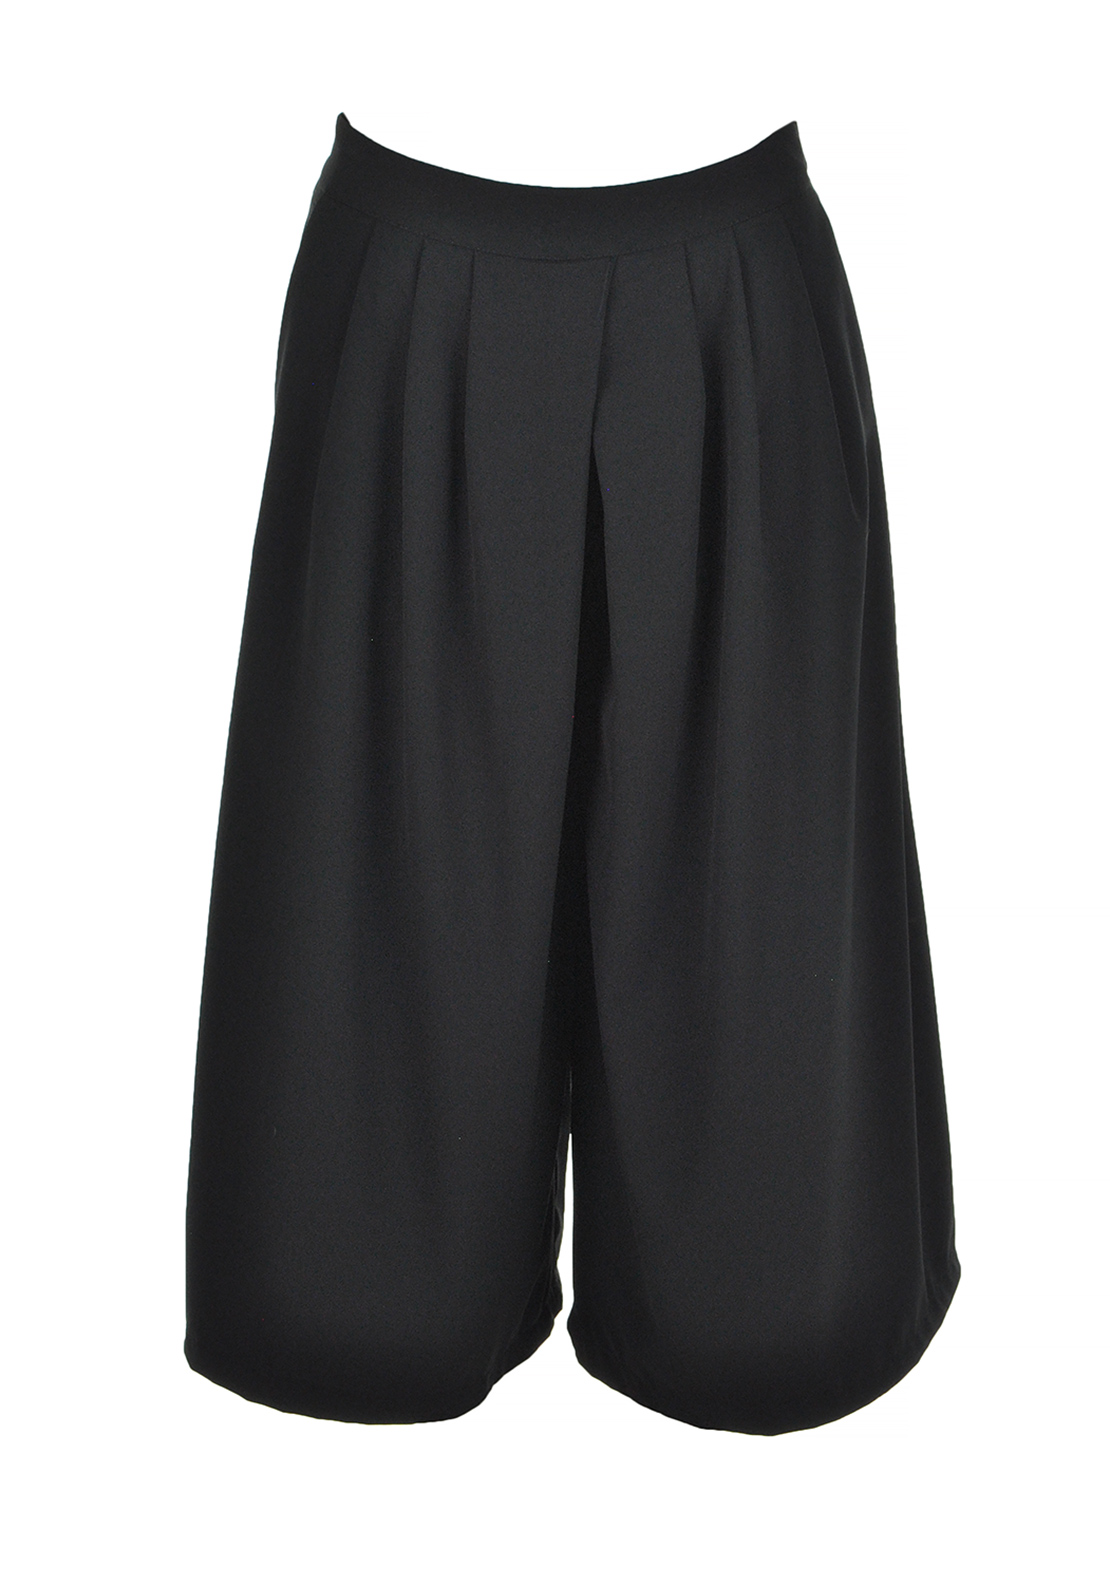 d.e.c.k. By Decollage Cullottes Cropped Trousers, Black